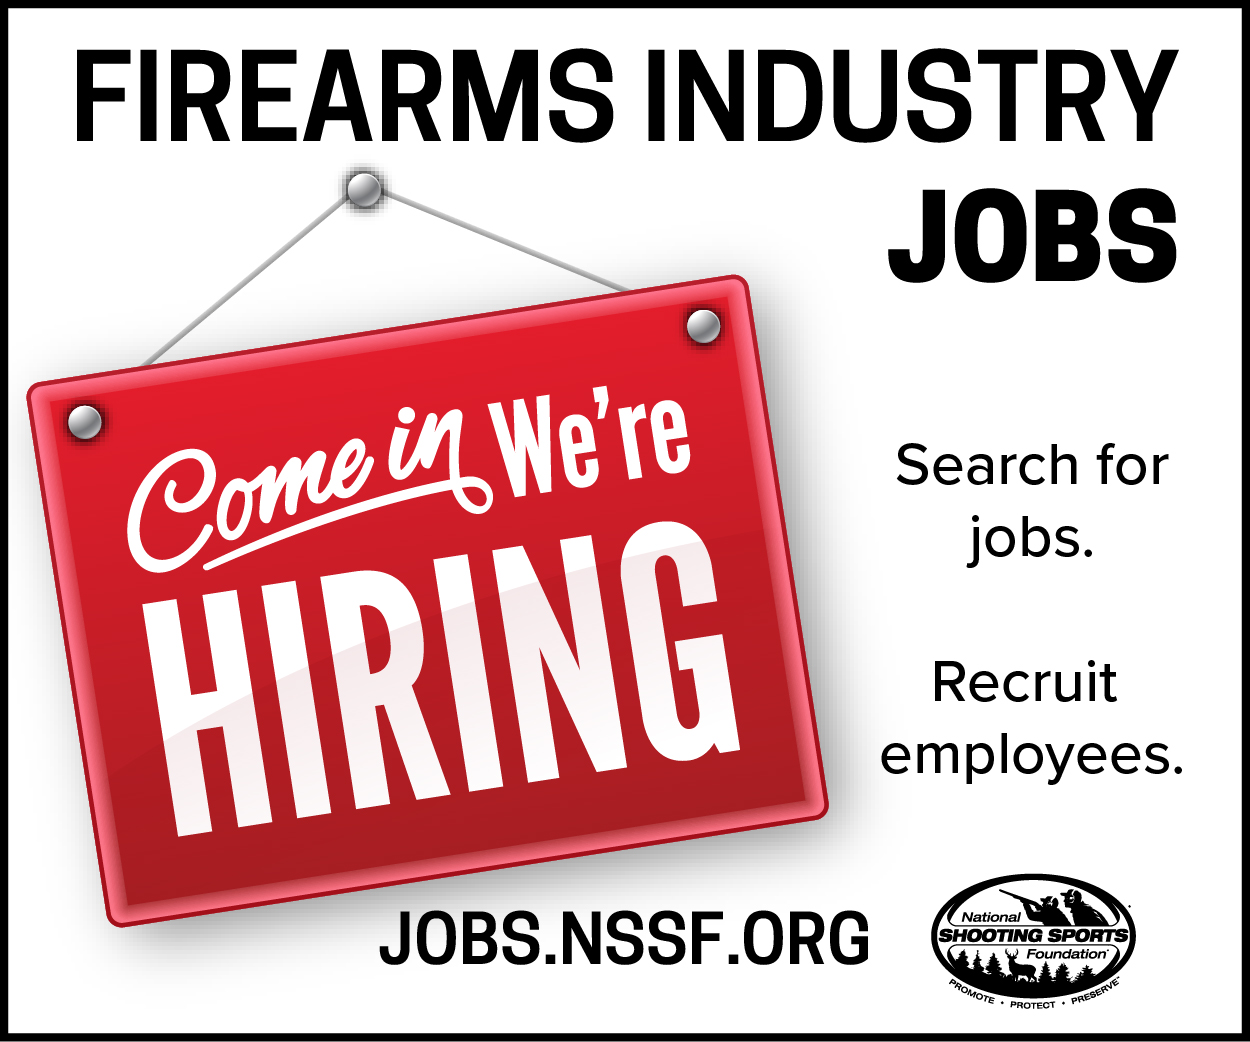 NSSF career center for firearms industry jobs